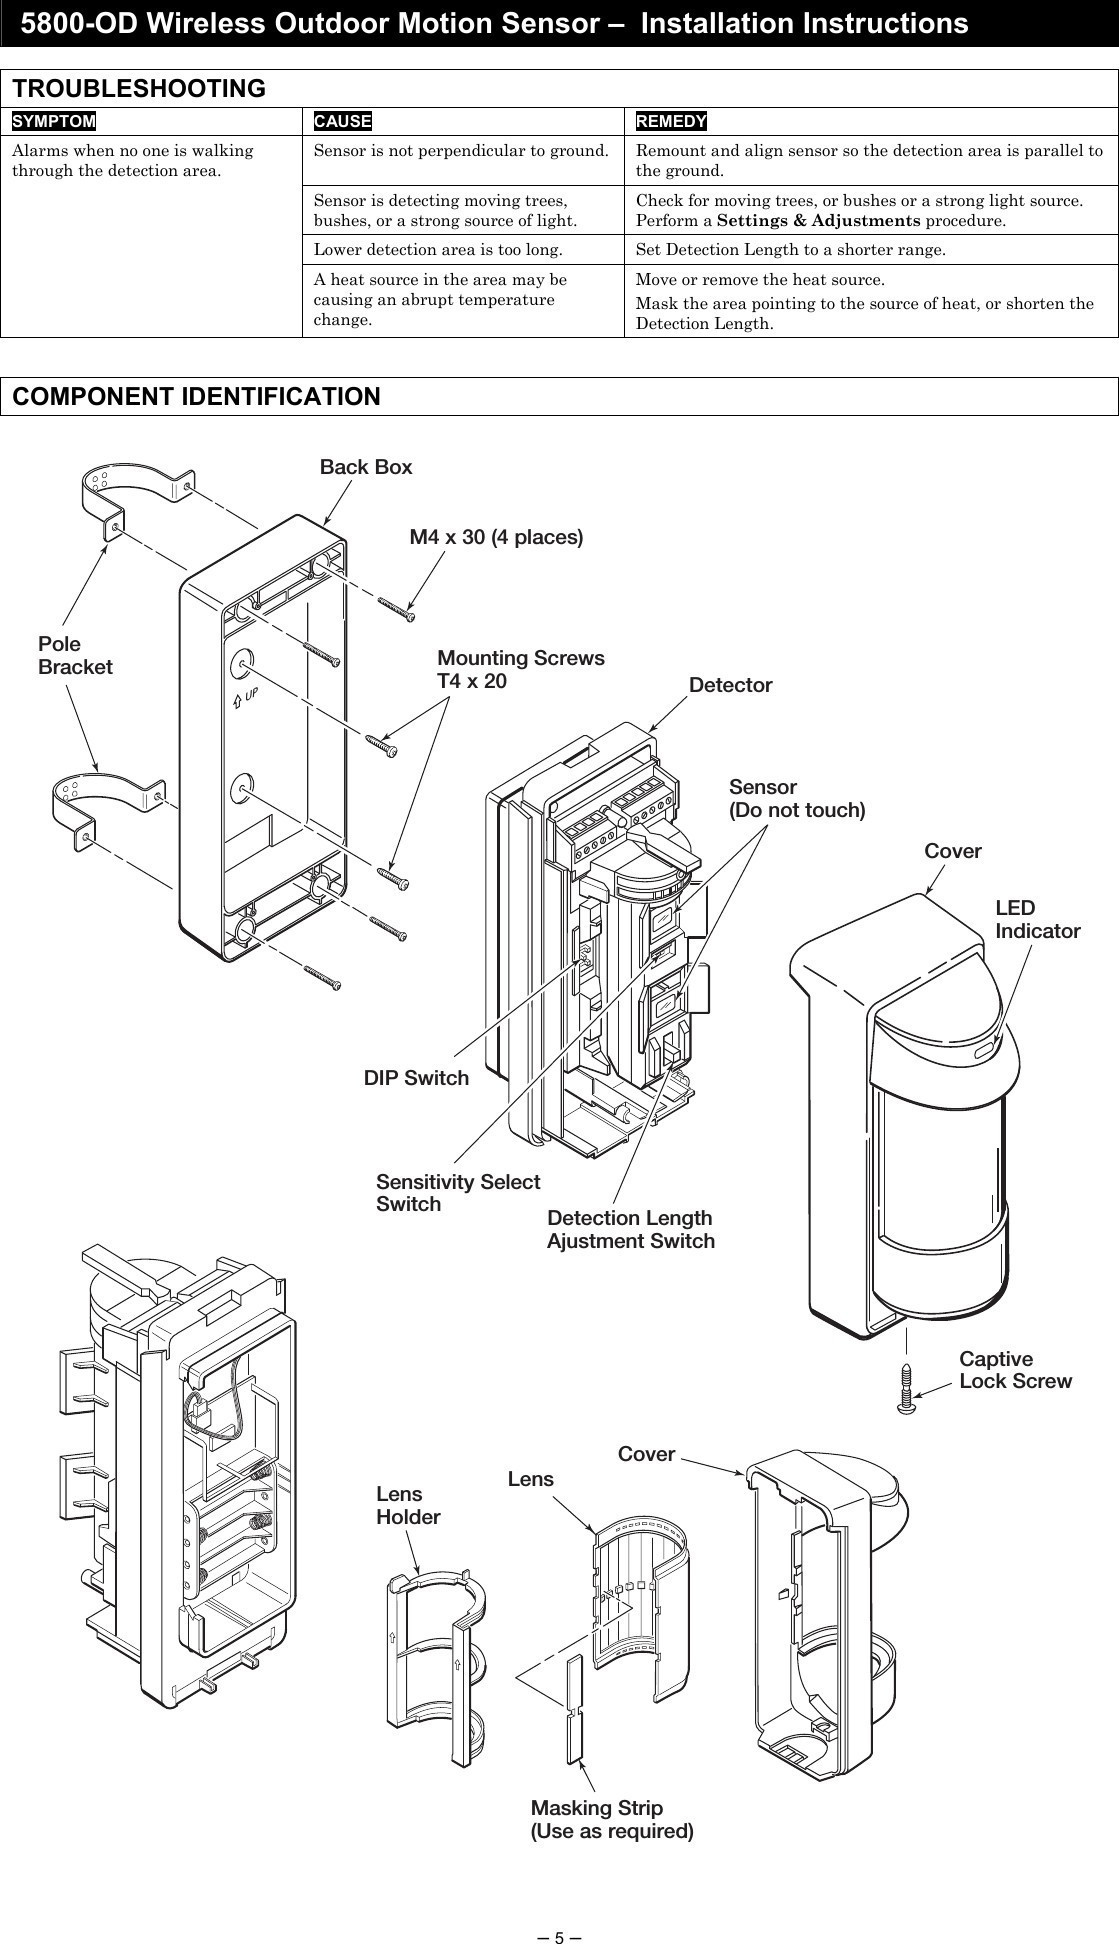 motion detector wiring diagram Download-Wiring Diagram For Outdoor Motion Detector Light Inspirational Wiring Diagram For Outdoor Flood Light Best Wiring Diagram For 19-t